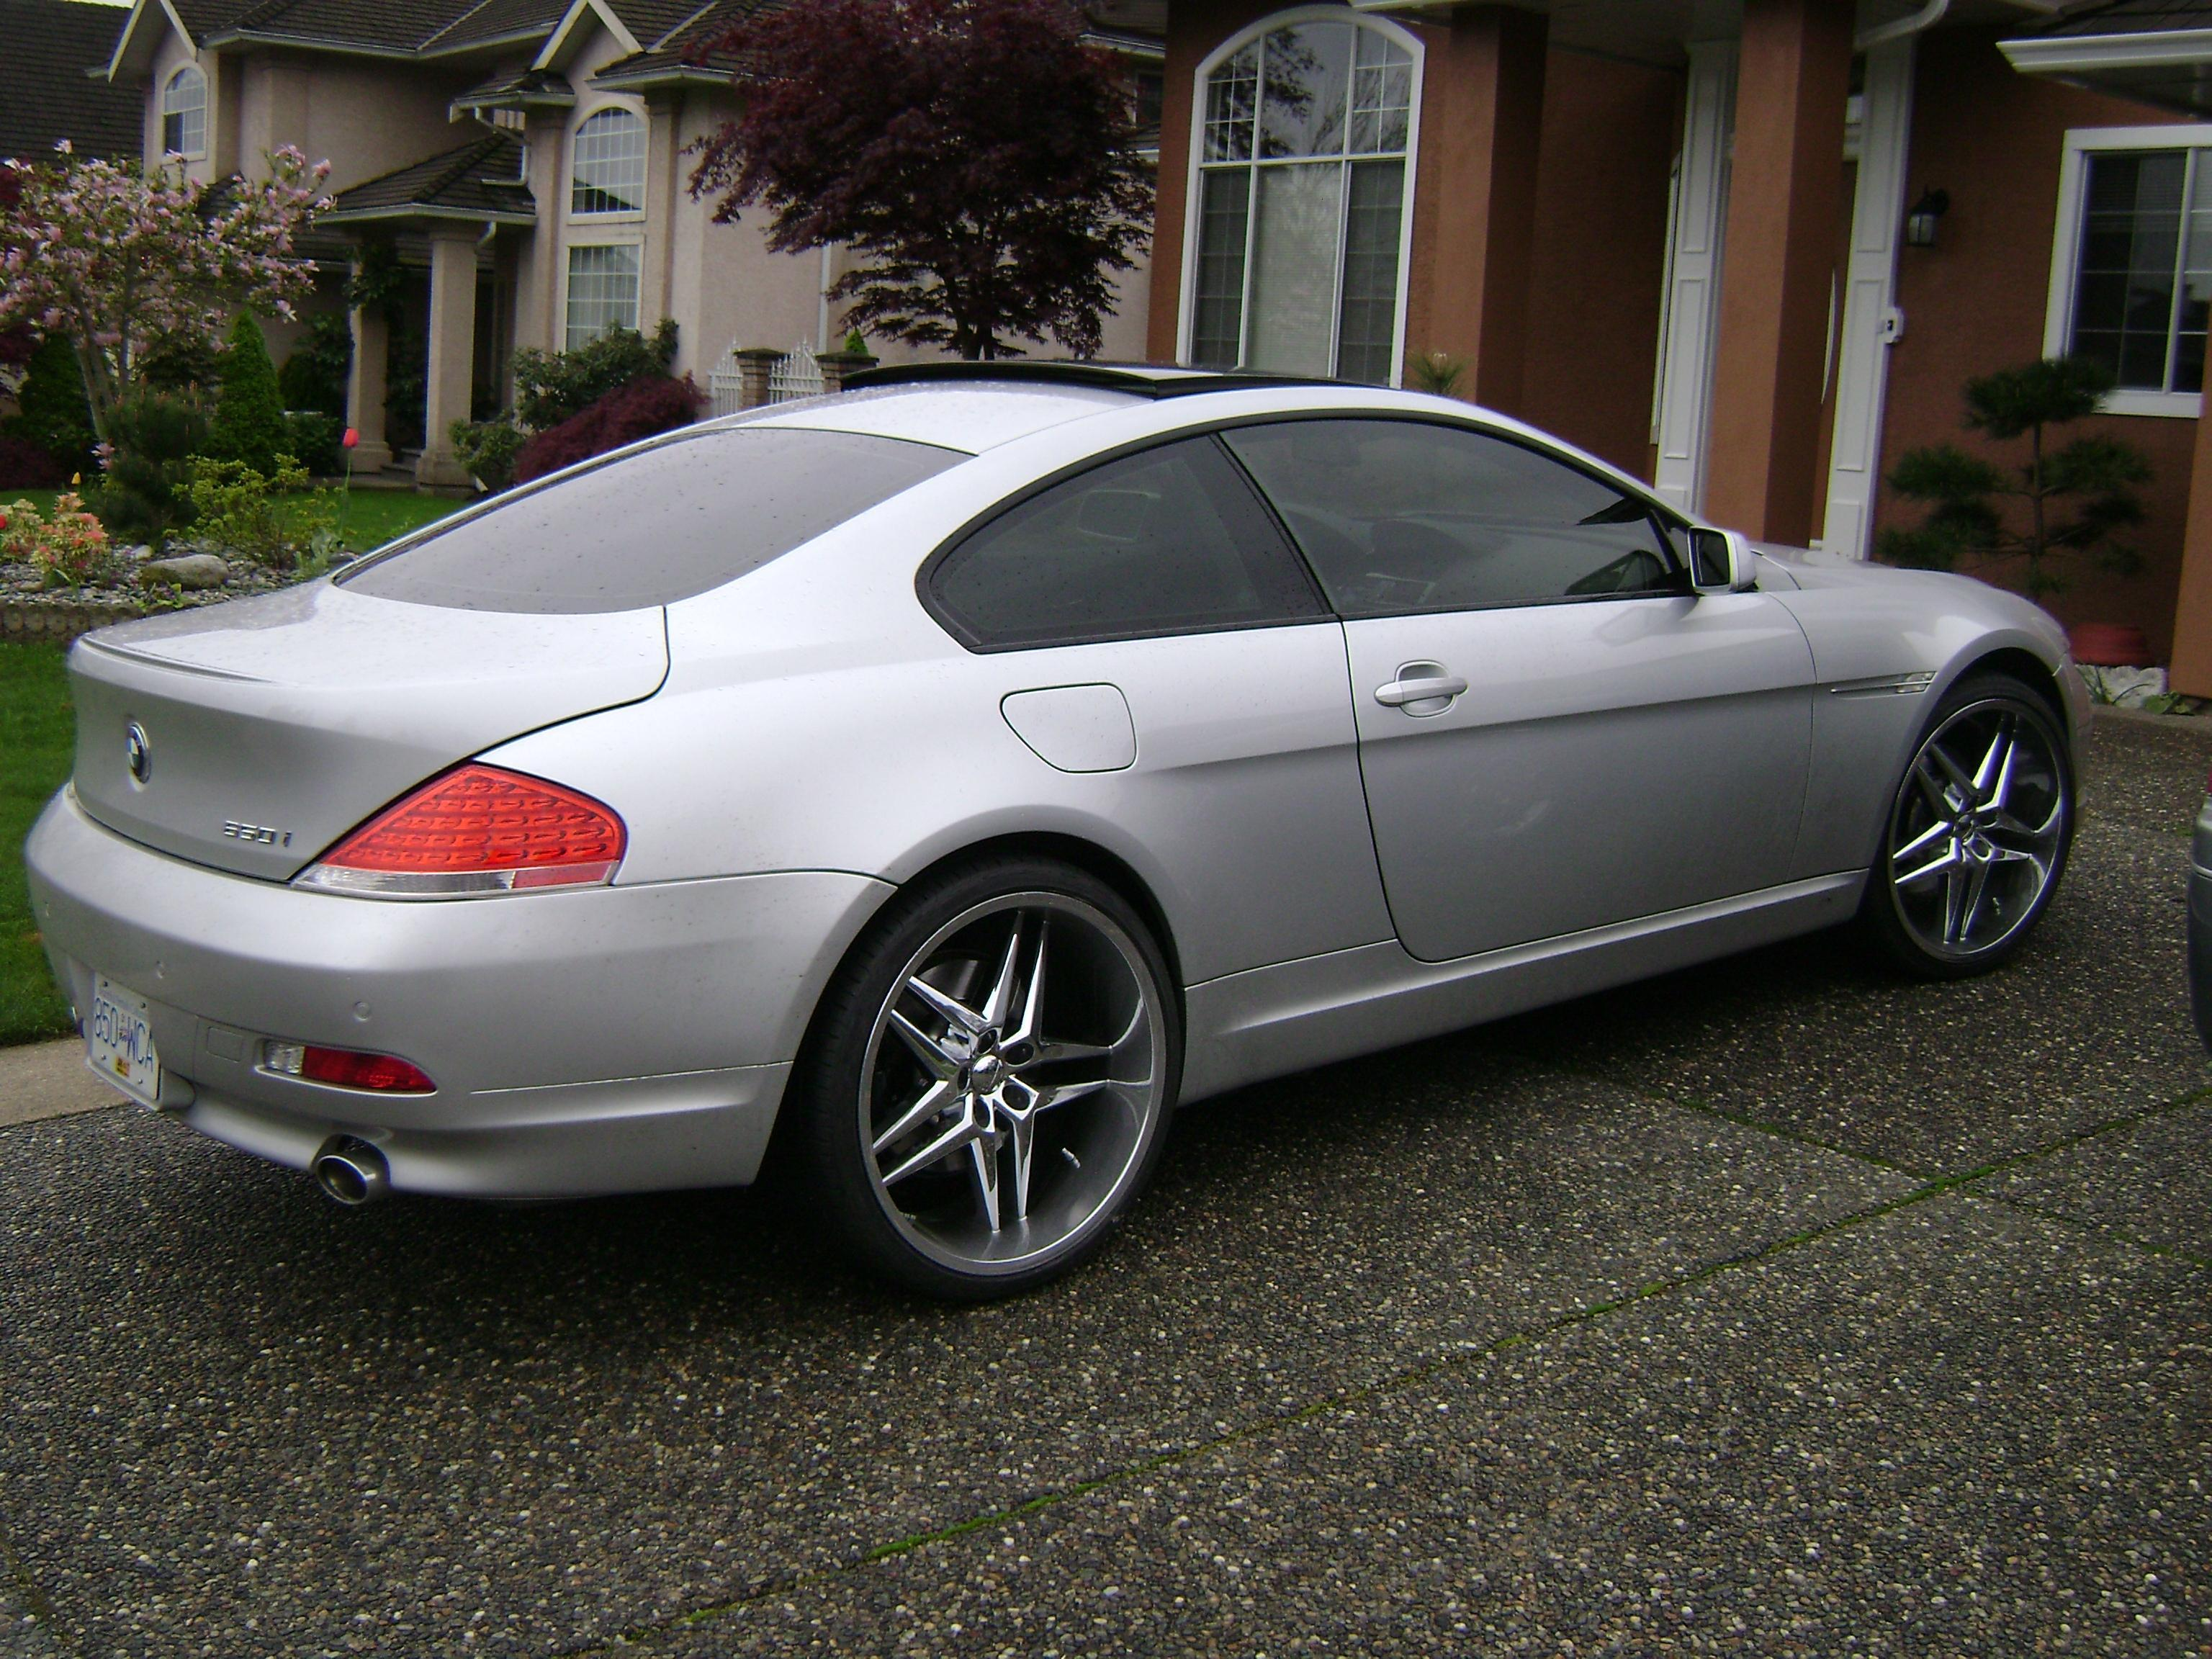 Bmw 650I 0 60 >> jason650i 2007 BMW 6 Series Specs, Photos, Modification Info at CarDomain